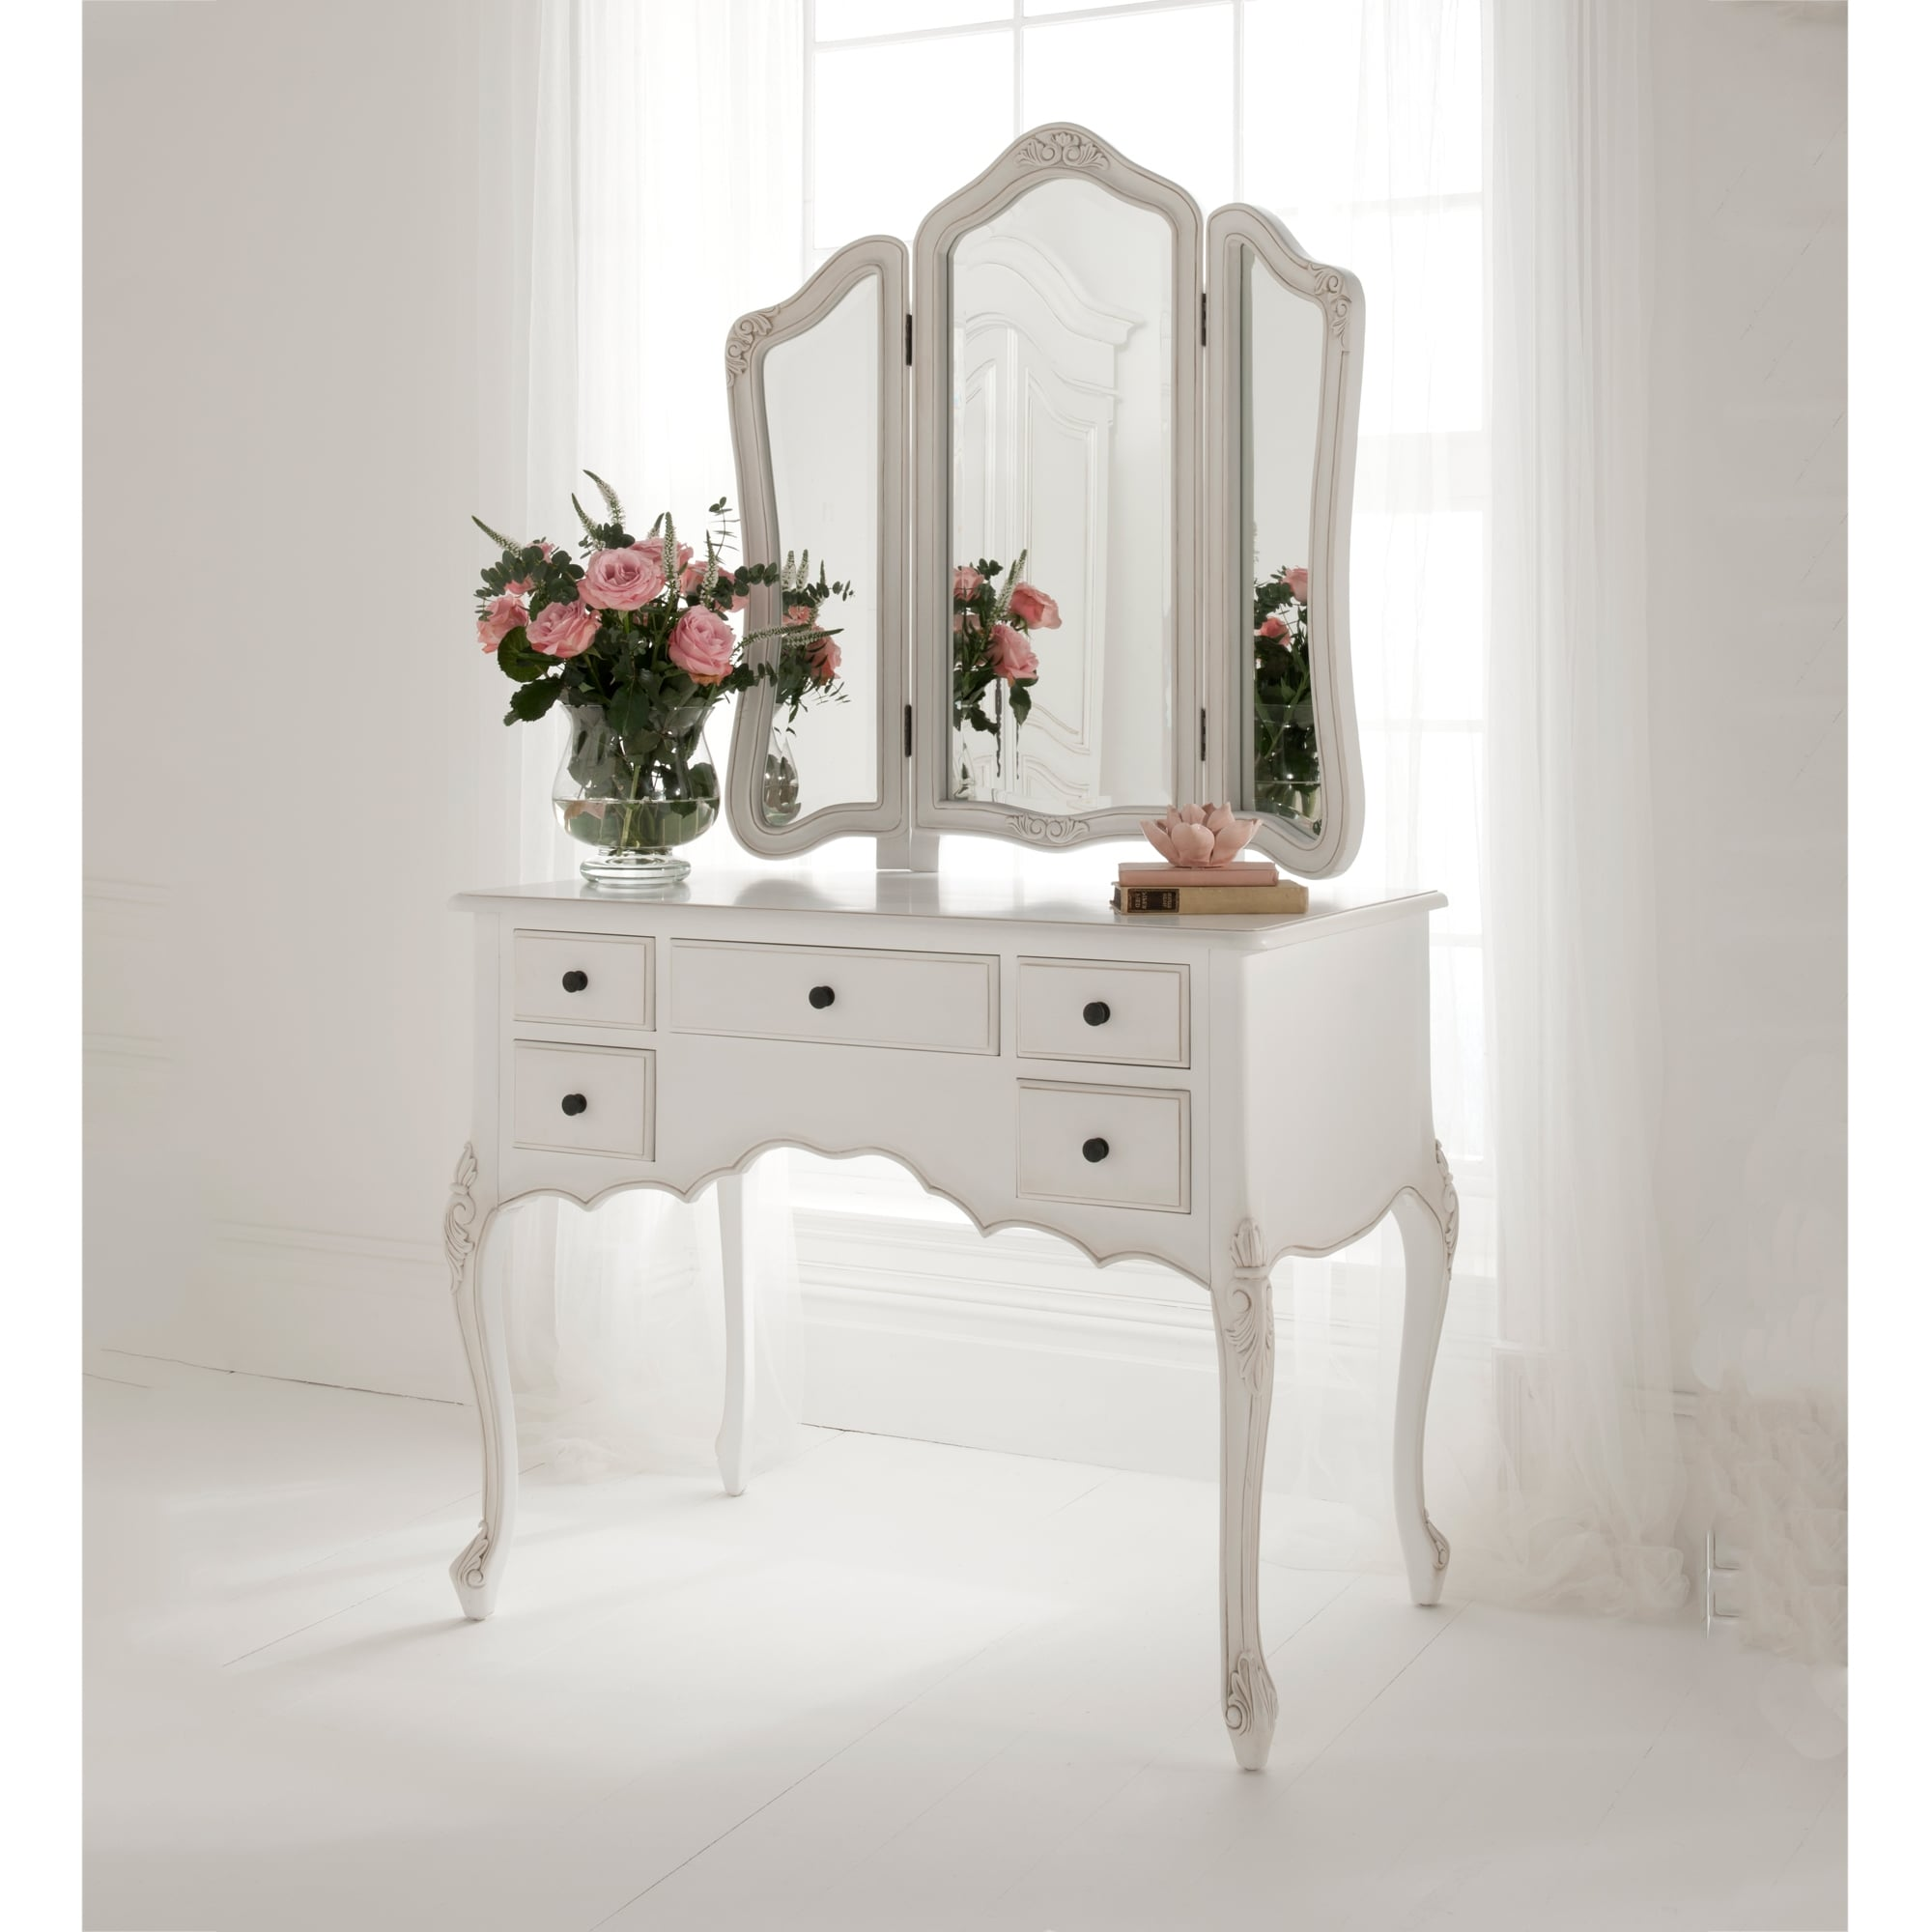 Paris Antique French Dressing Table Is A Fantastic Addition To Our Antique French Furniture